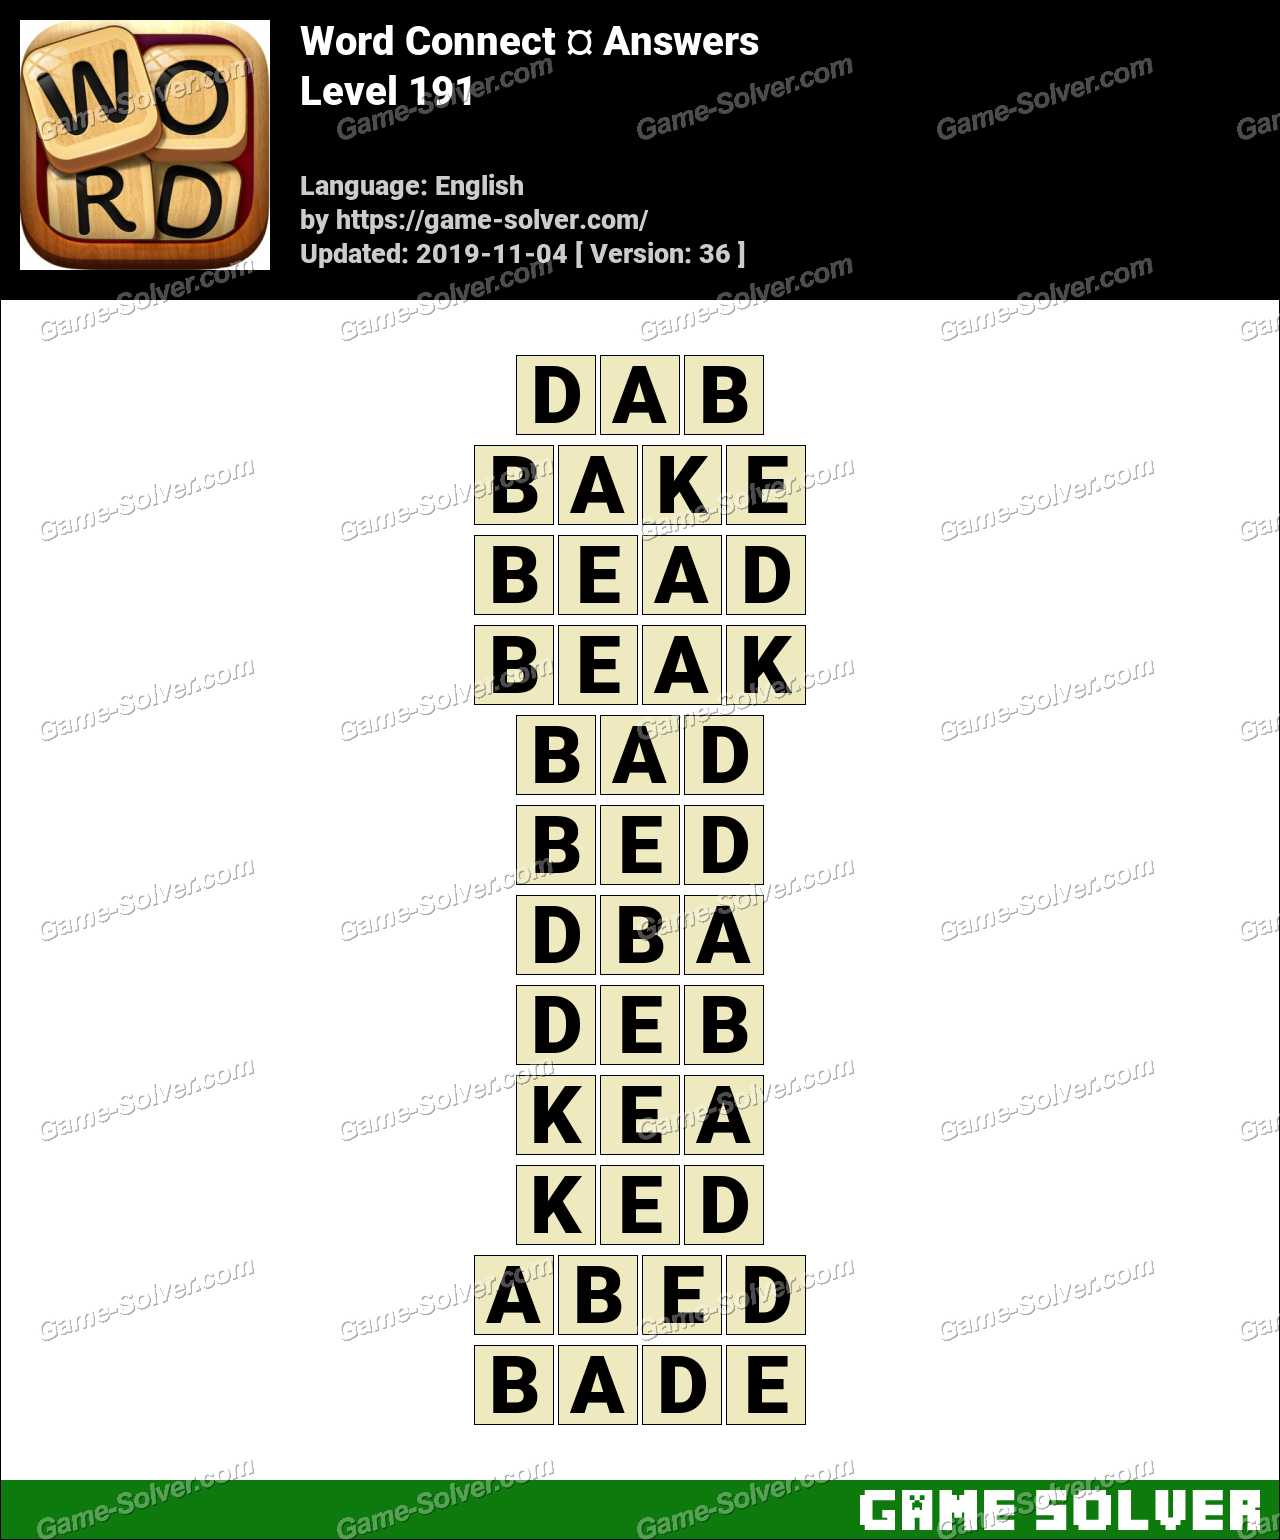 Word Connect Level 191 Answers